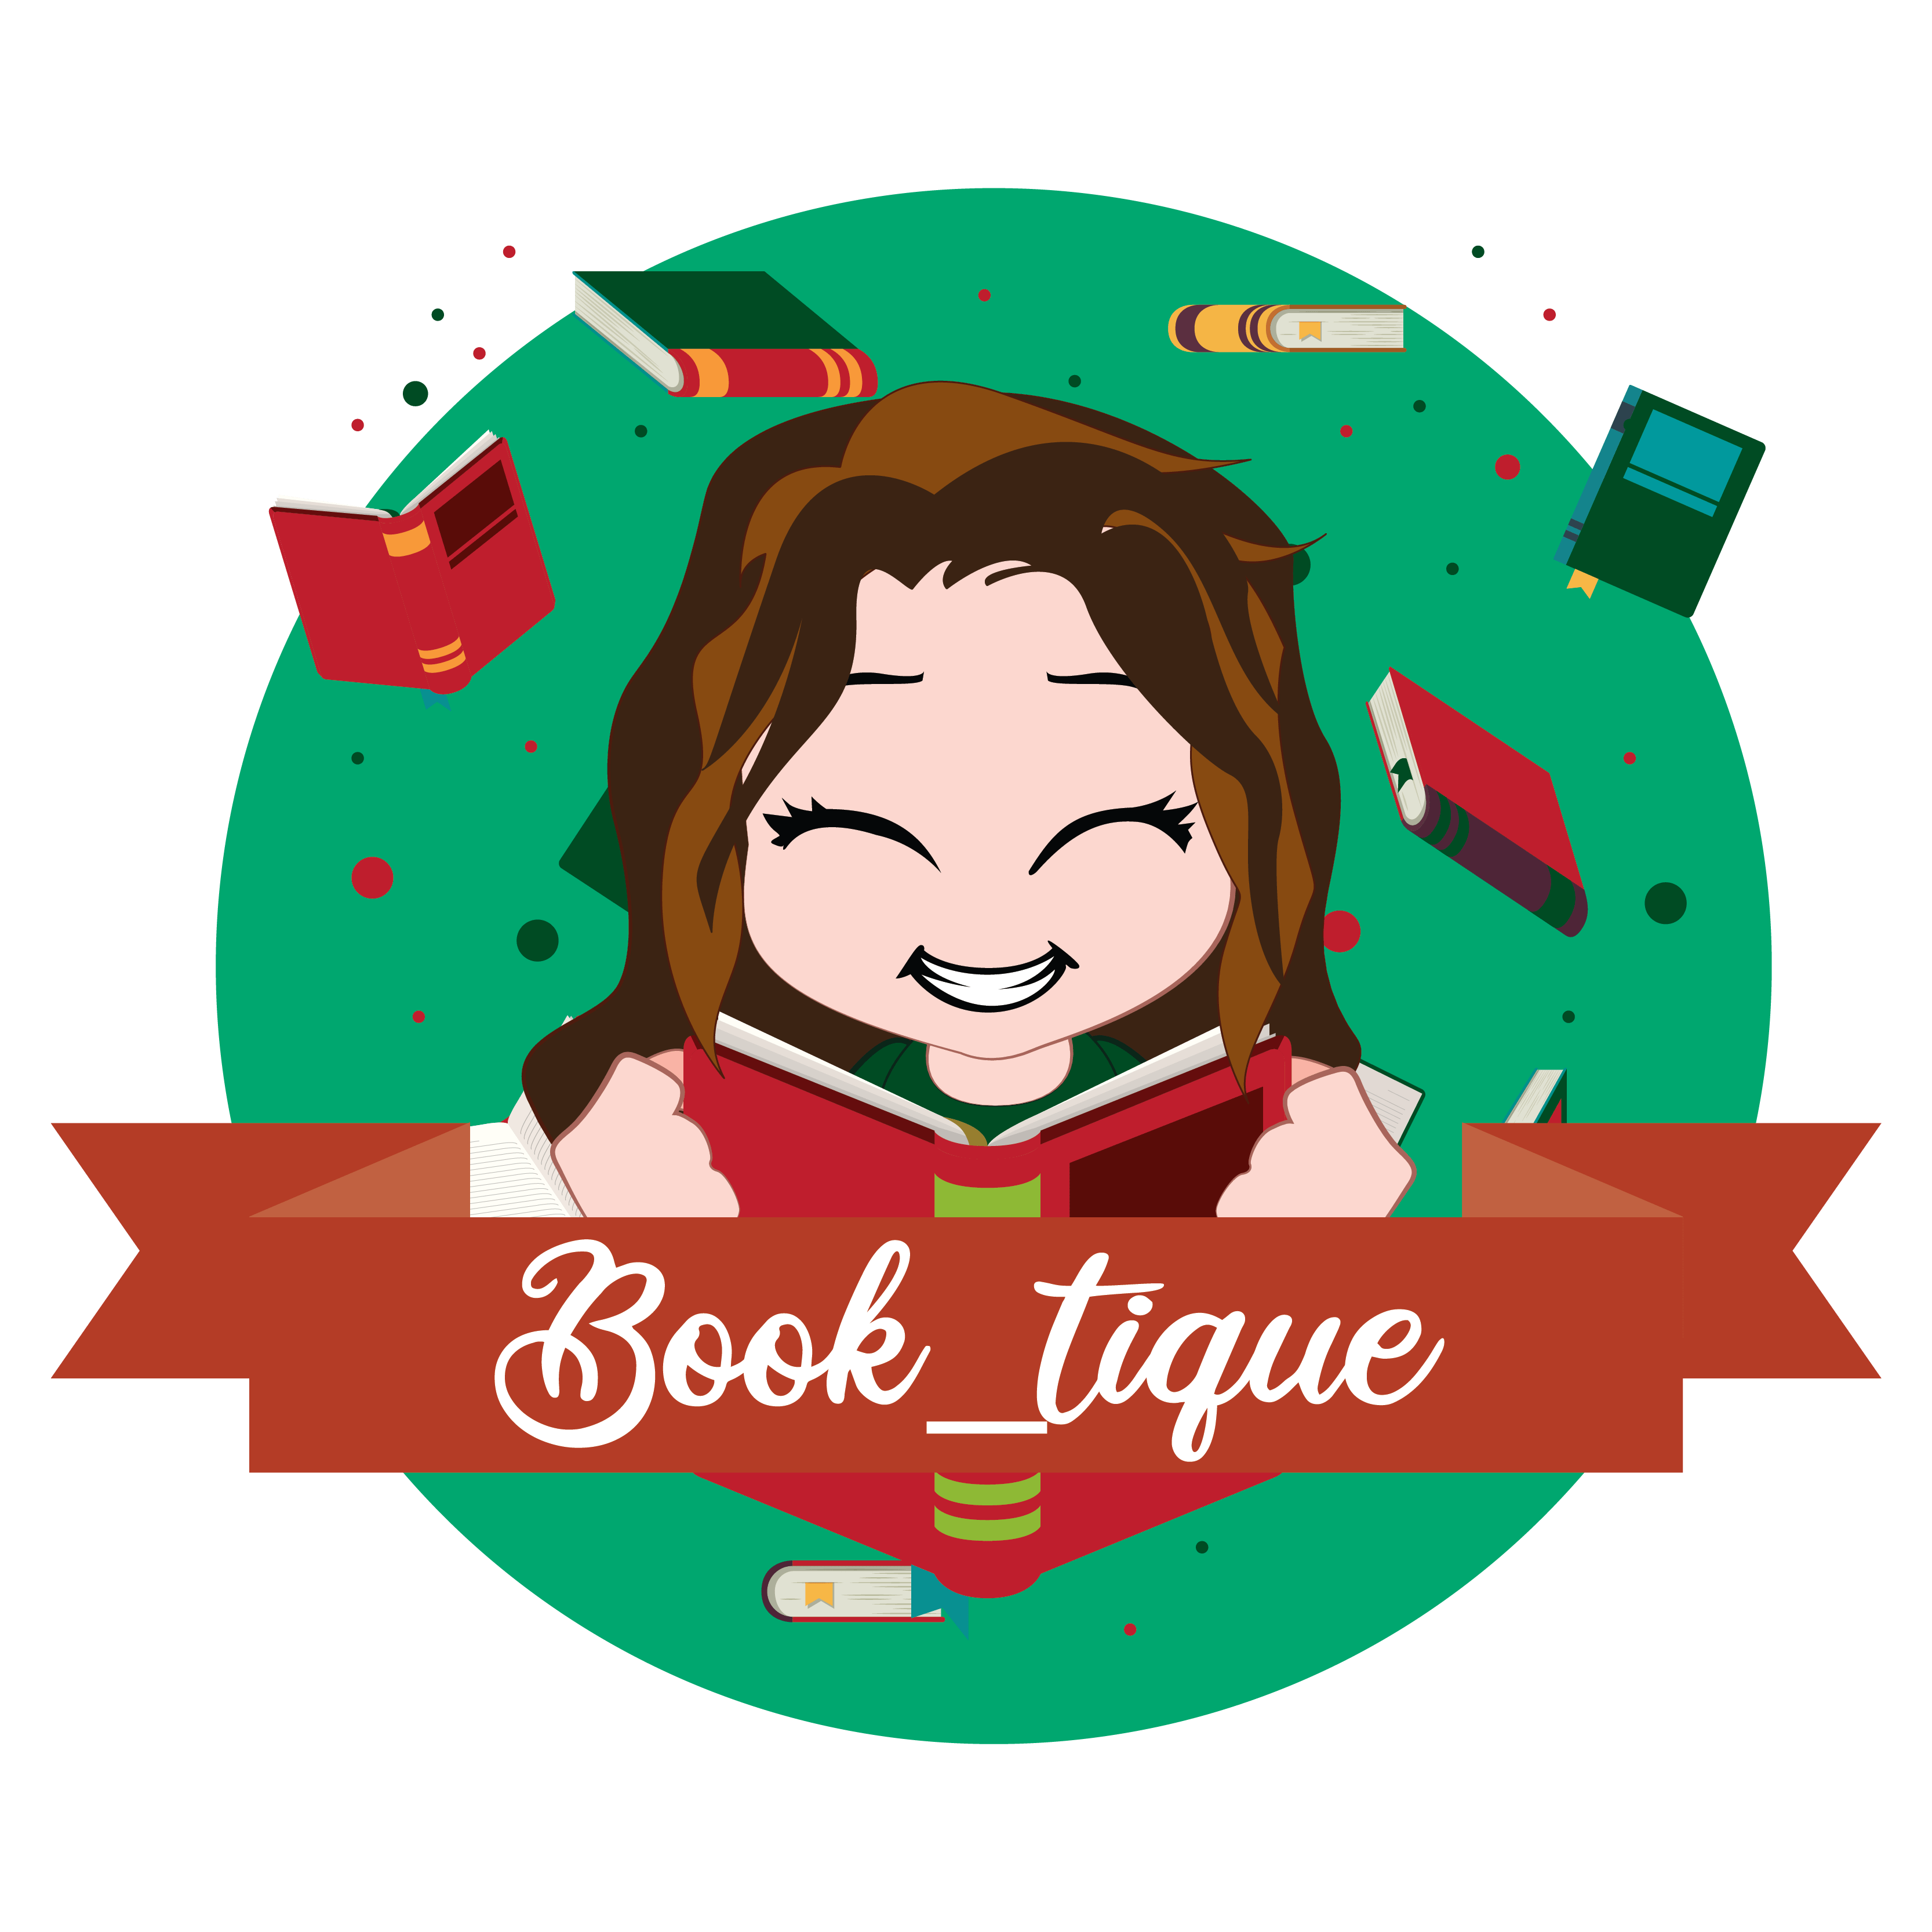 book-tique Booktique Giorgia's Booktique